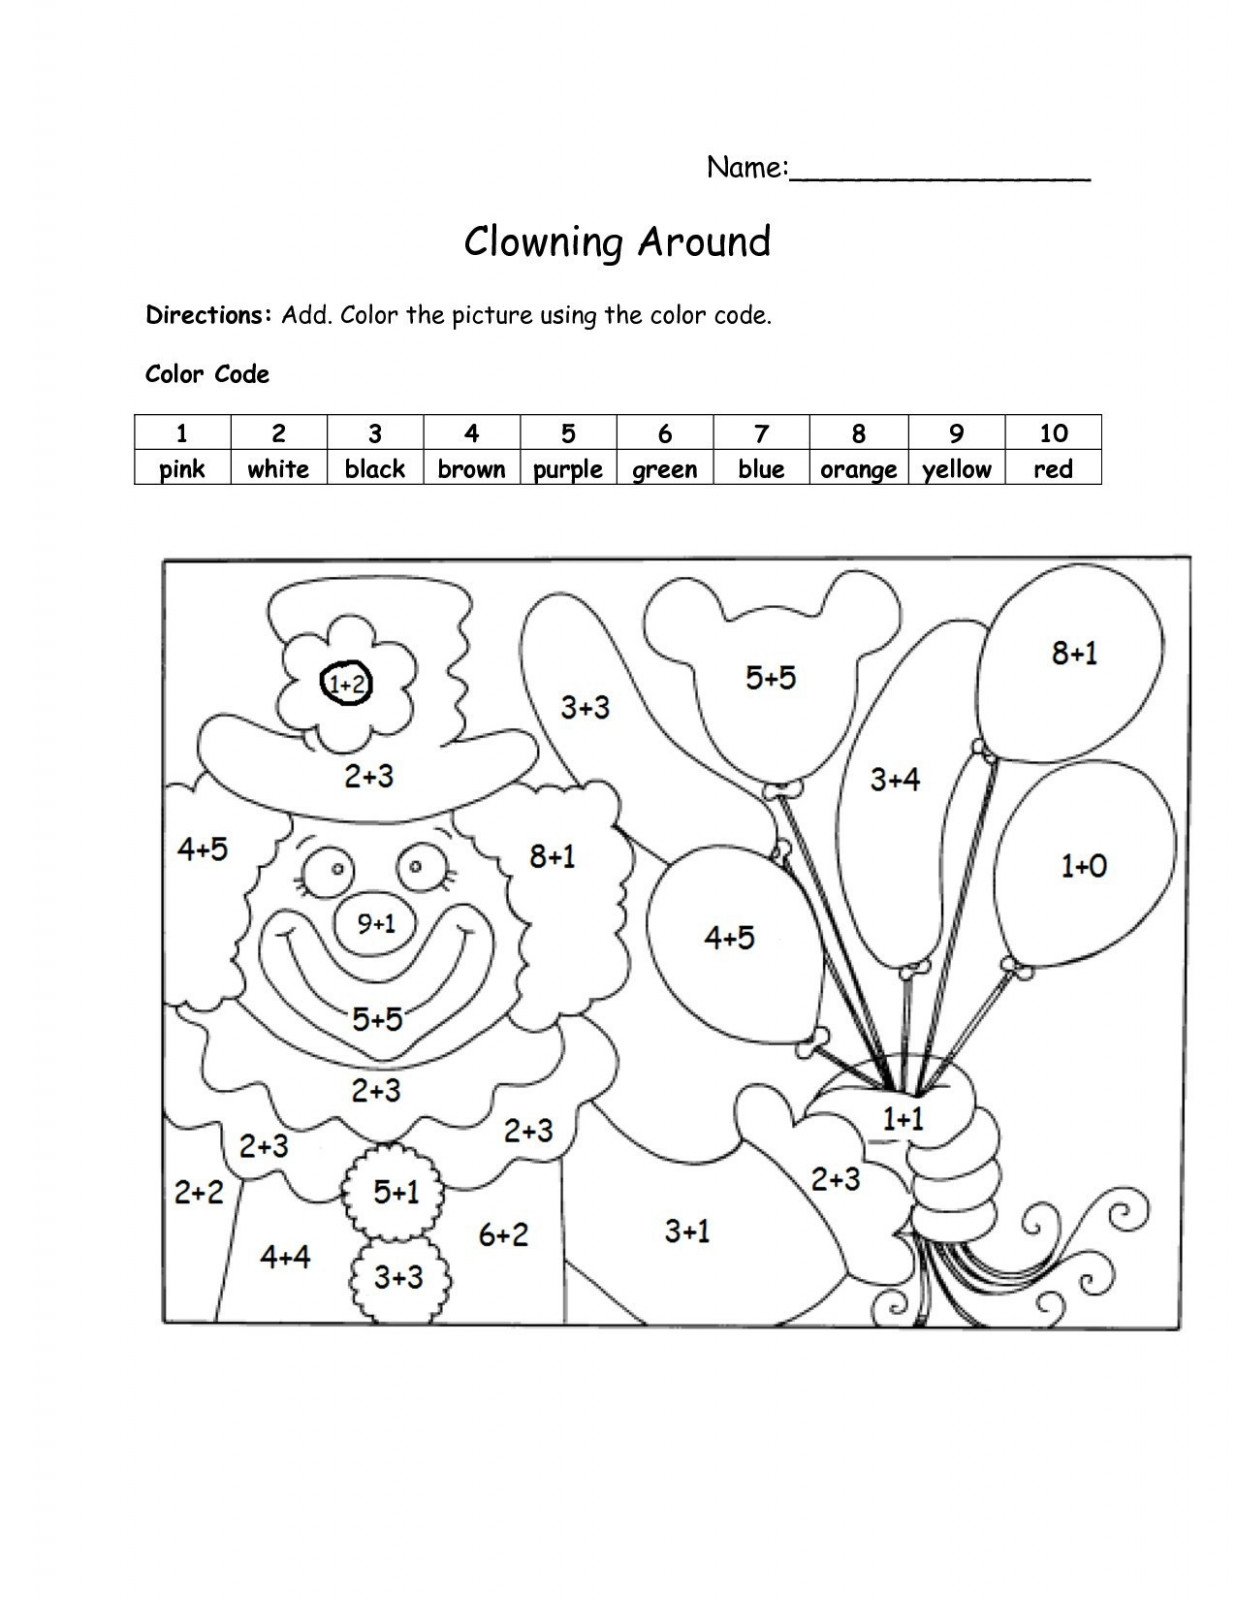 12 Cool Christmas Coloring Sheets For First Grade : Karen Coloring Page